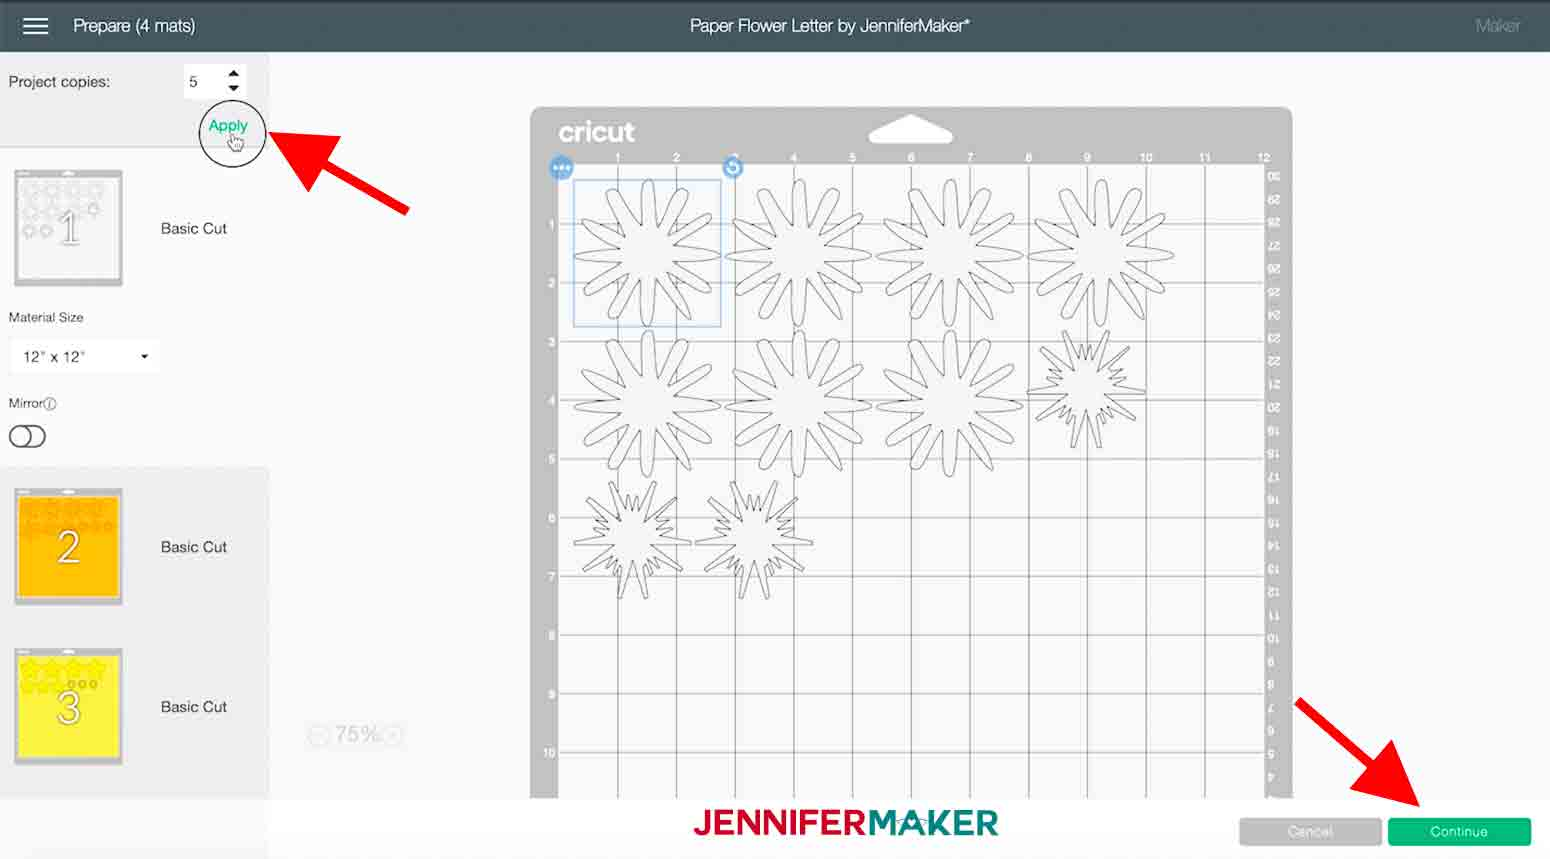 arrow points to project copies and continue button in cricut design space paper flower letter project